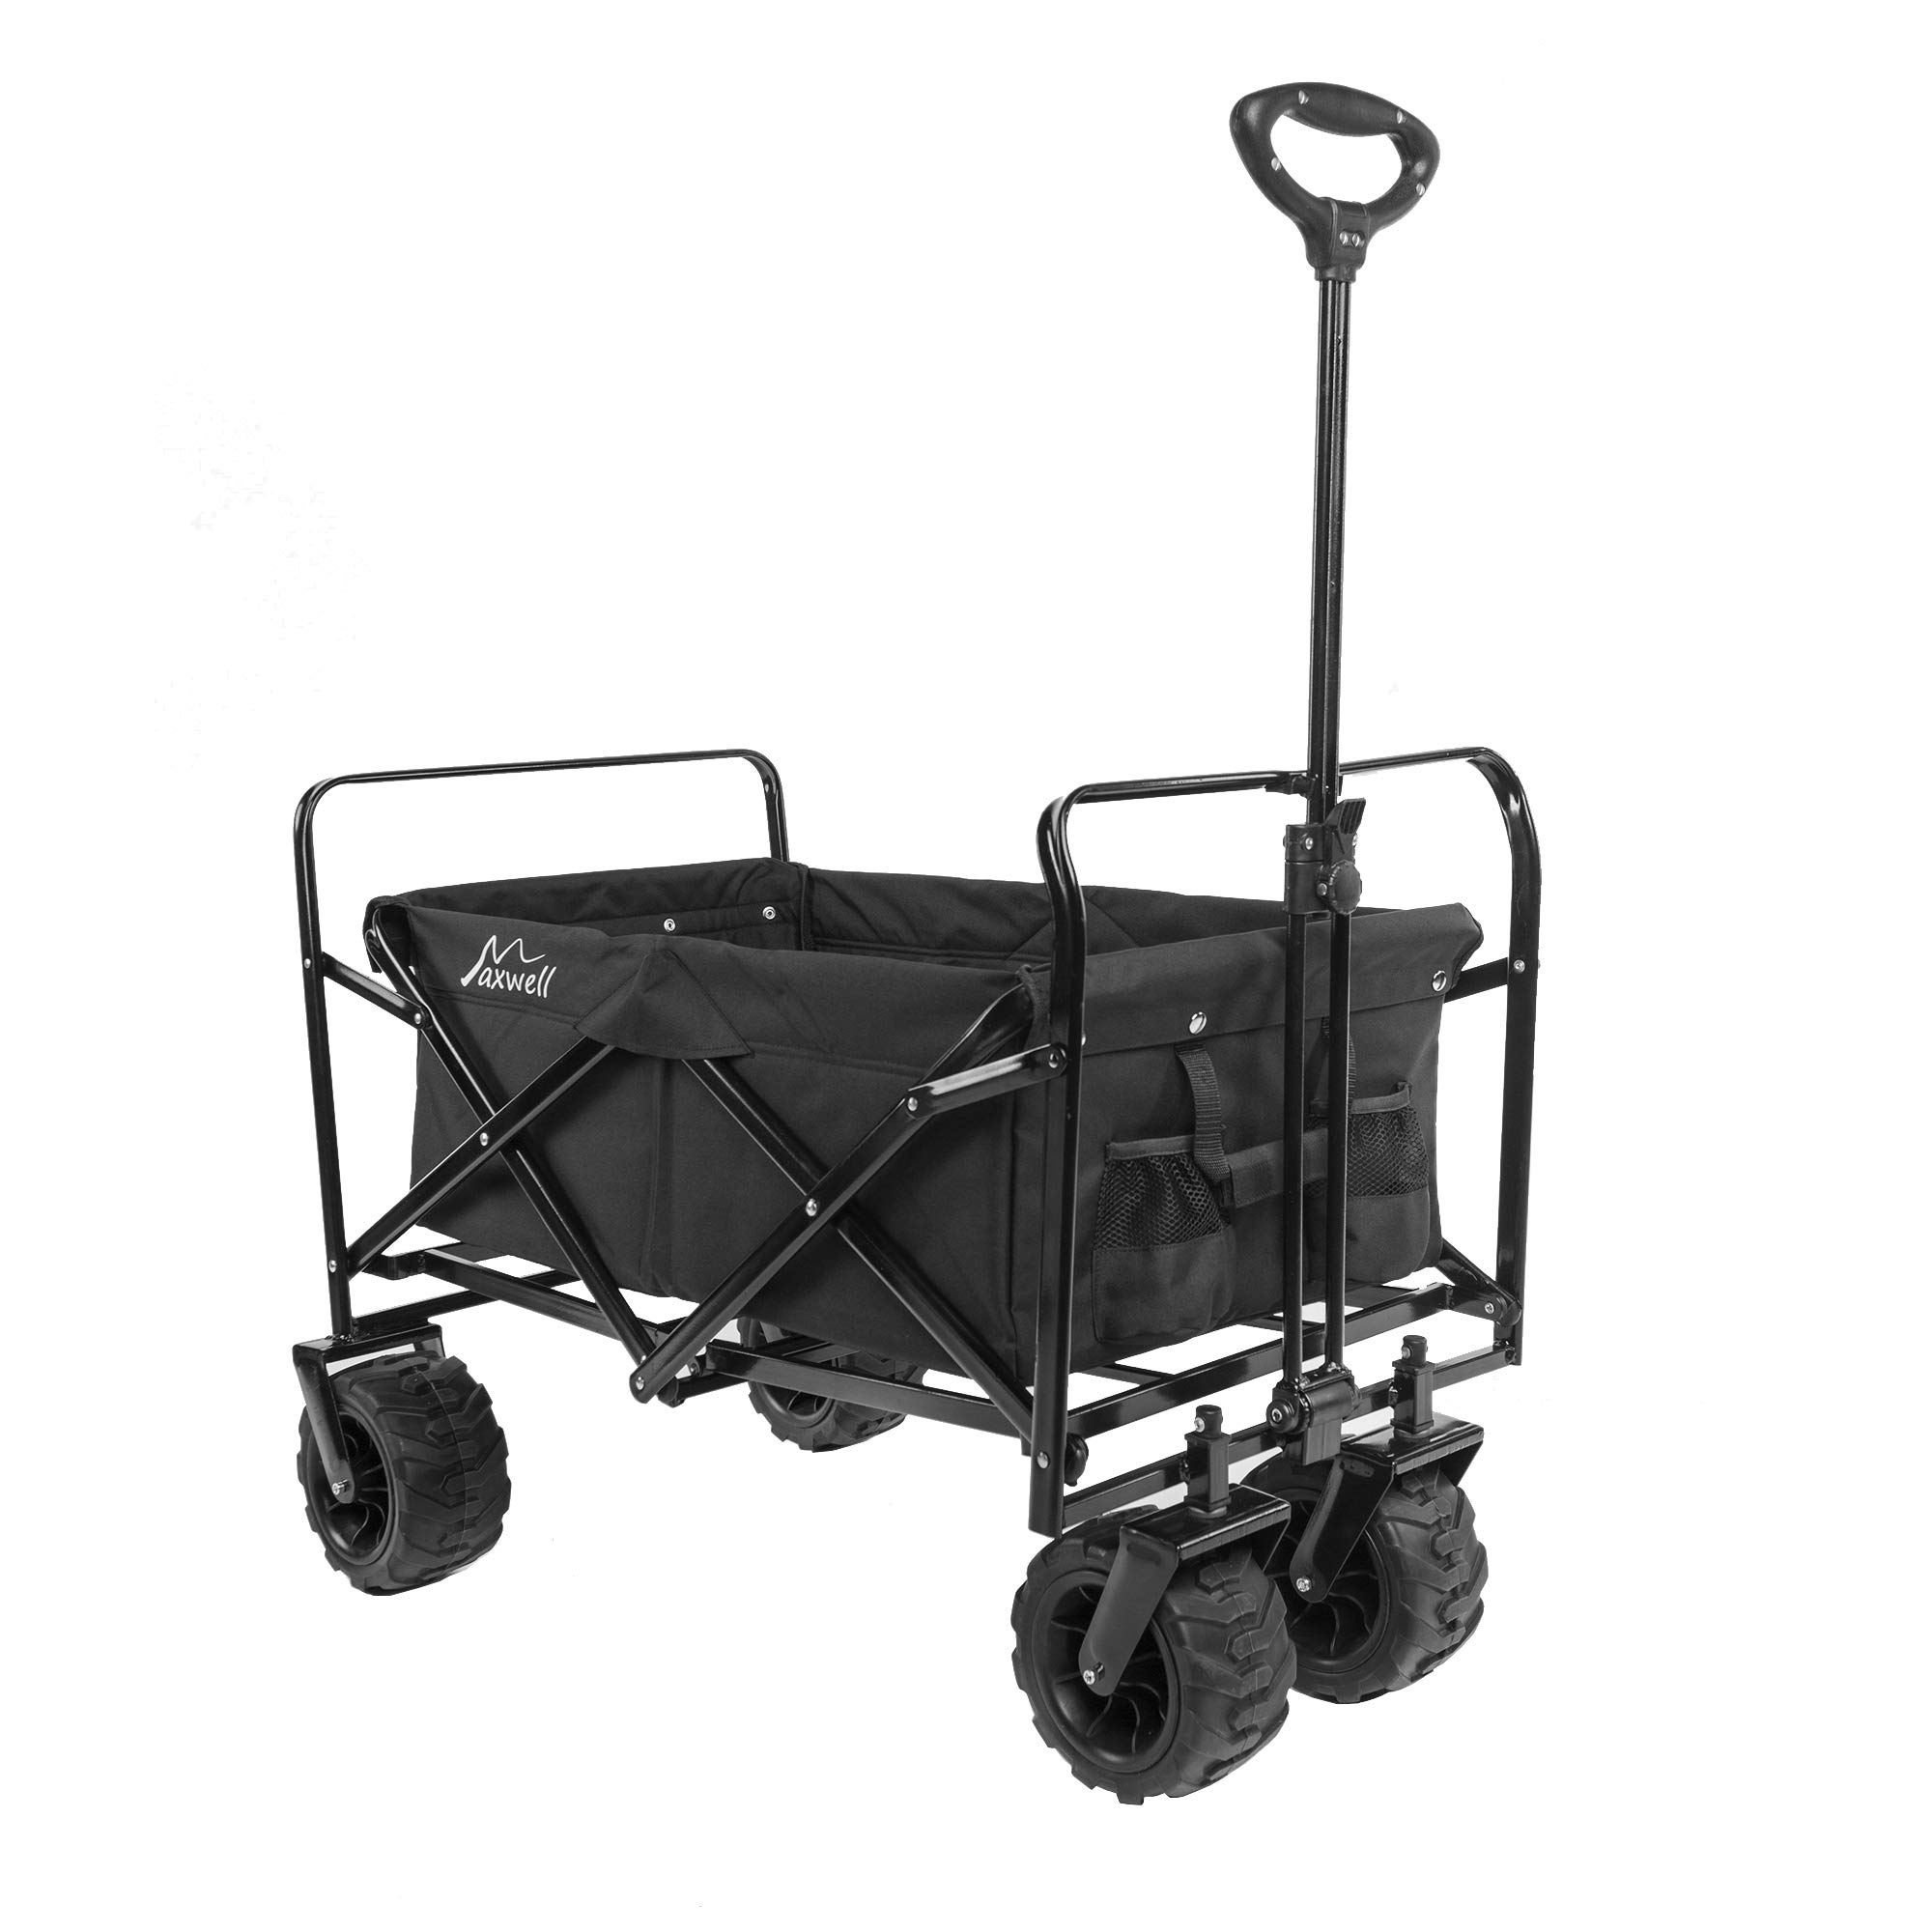 Maxwell Outdoor Heavy Duty Collapsible Folding All Terrain Utility Beach Wagon (Black) by Maxwell Outdoor